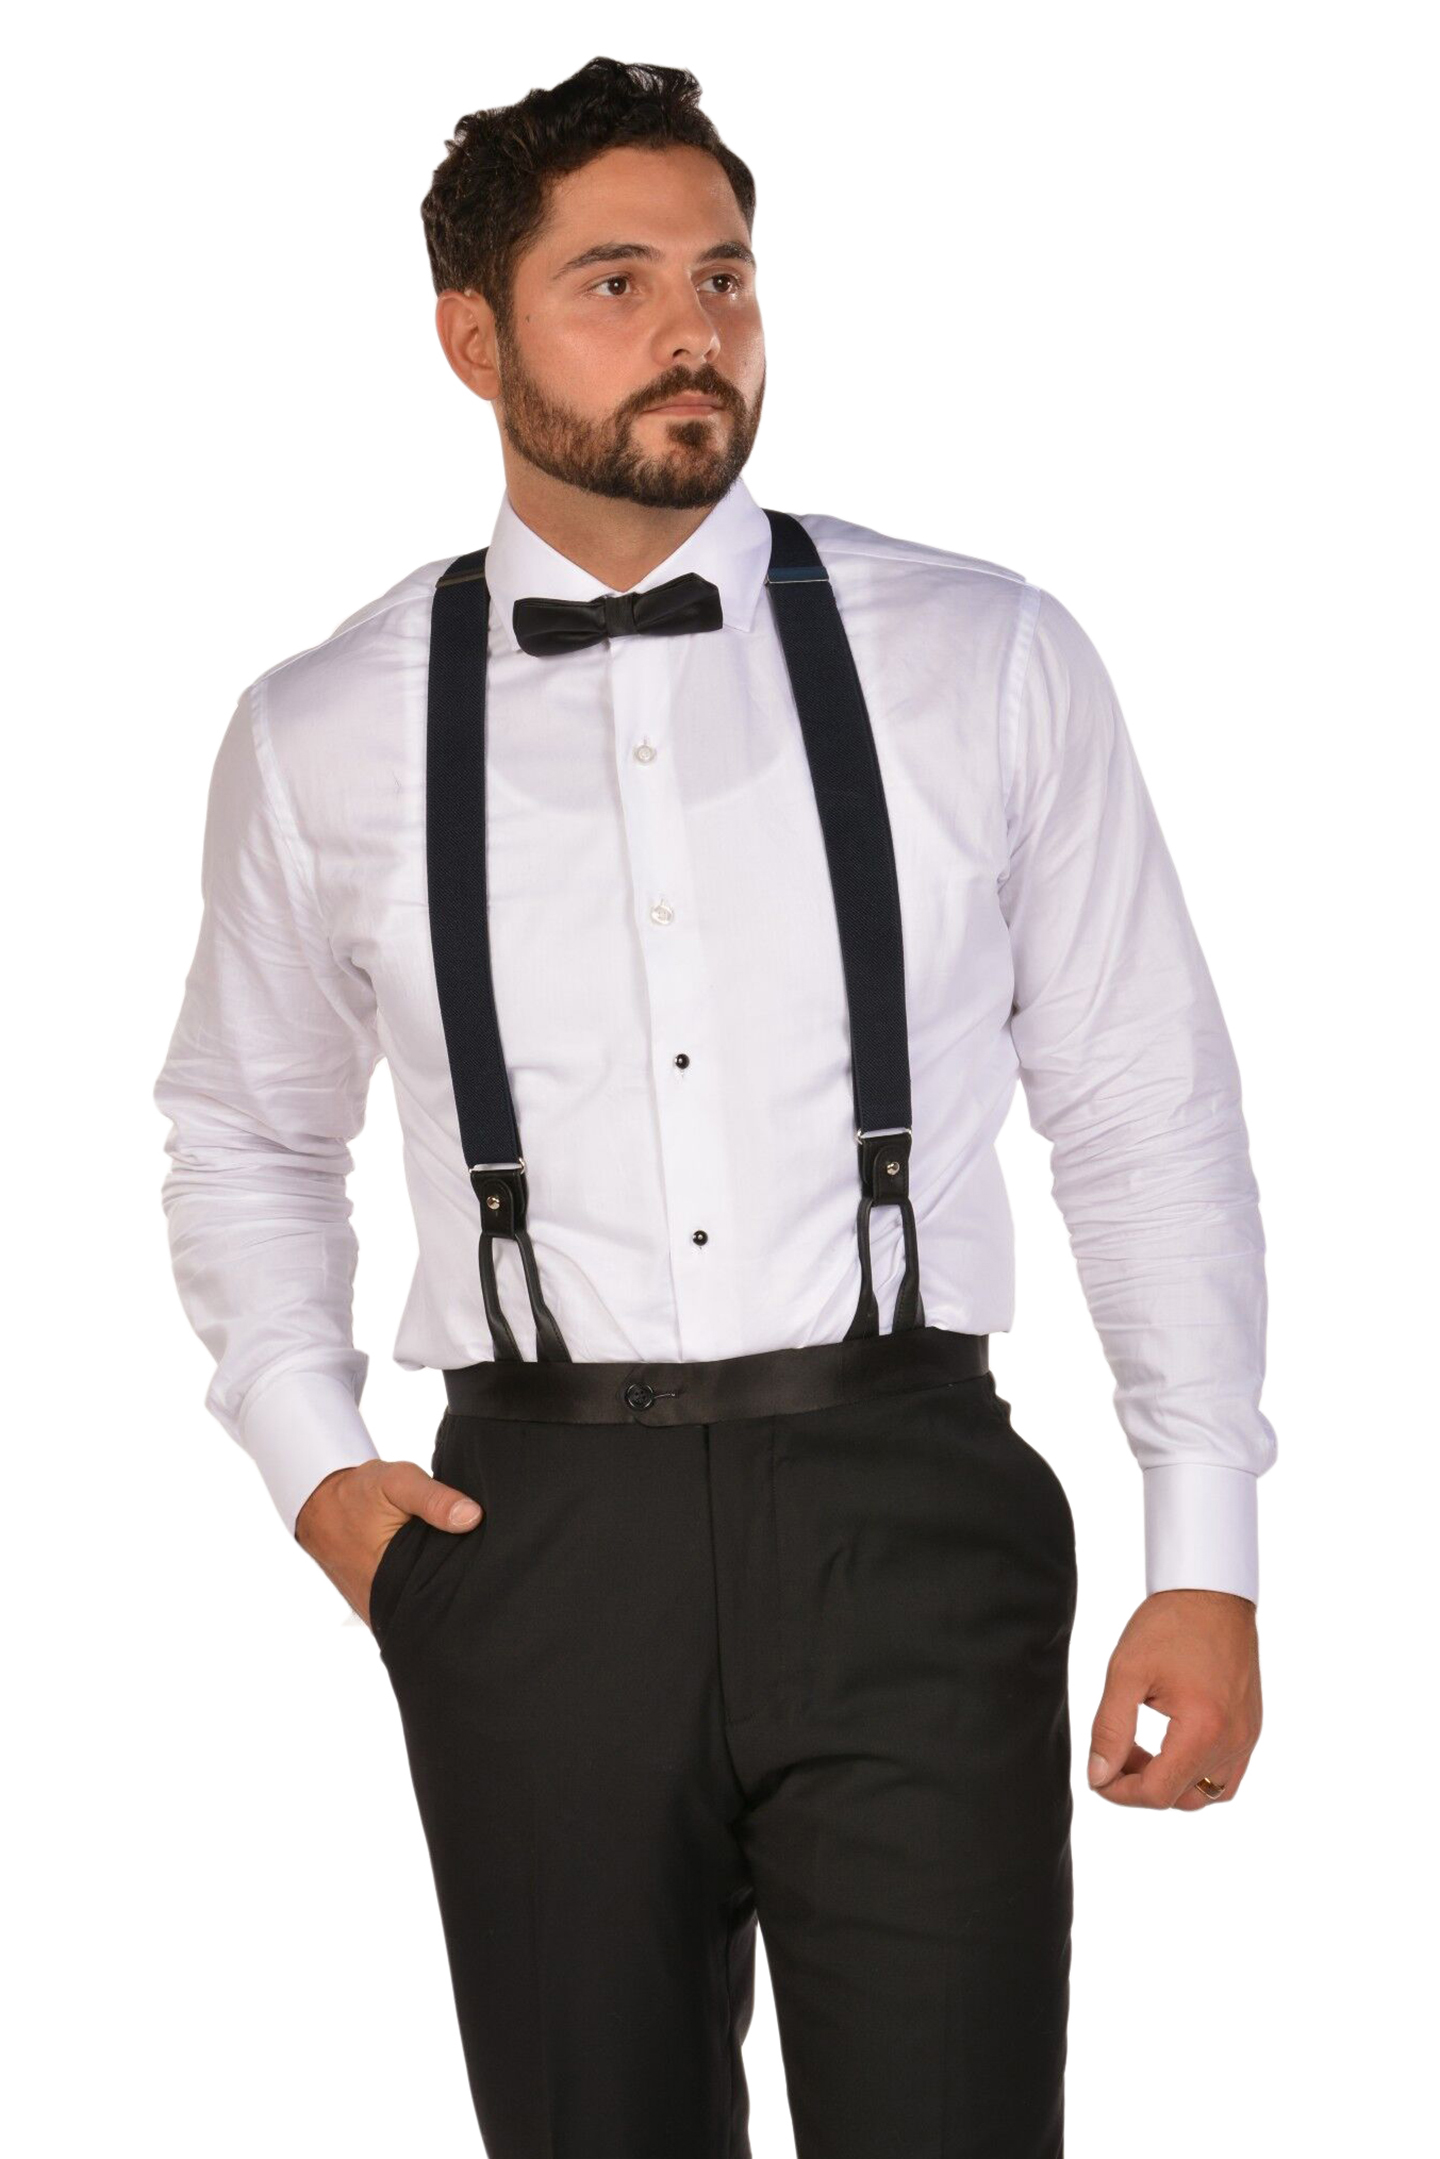 Nvy-Suspenders_pic2